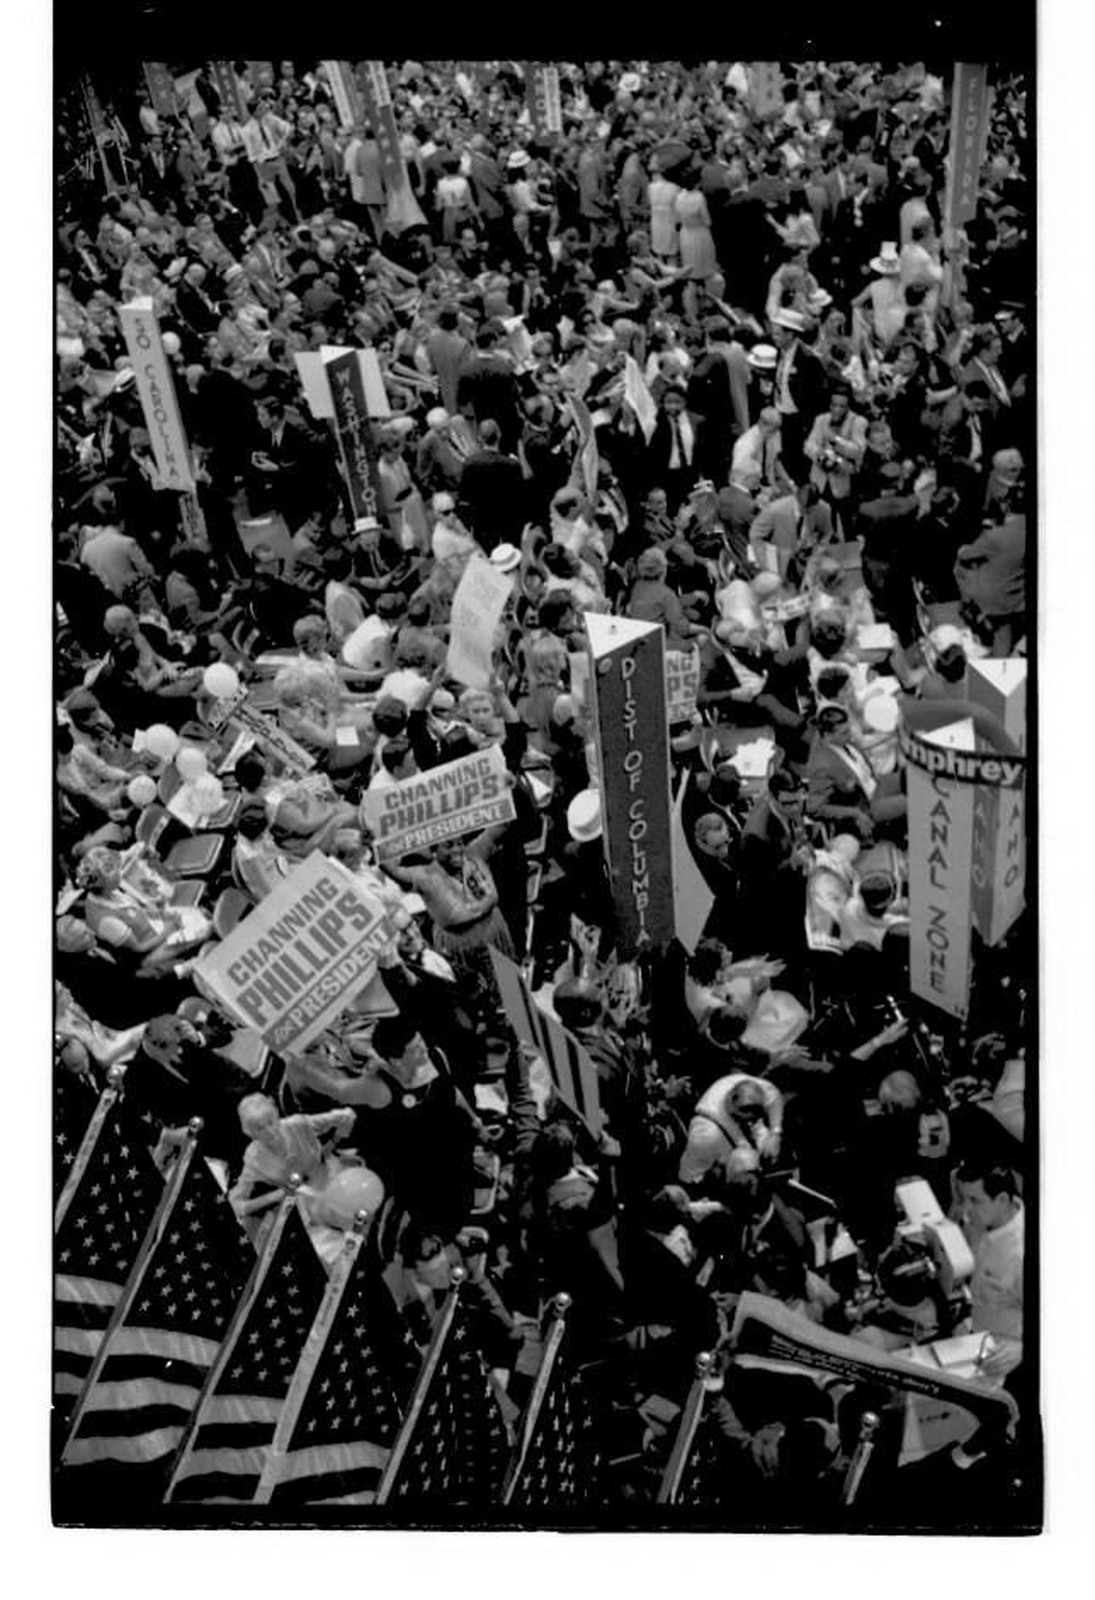 Delegates With Signs At The 1968 Democratic National Convention